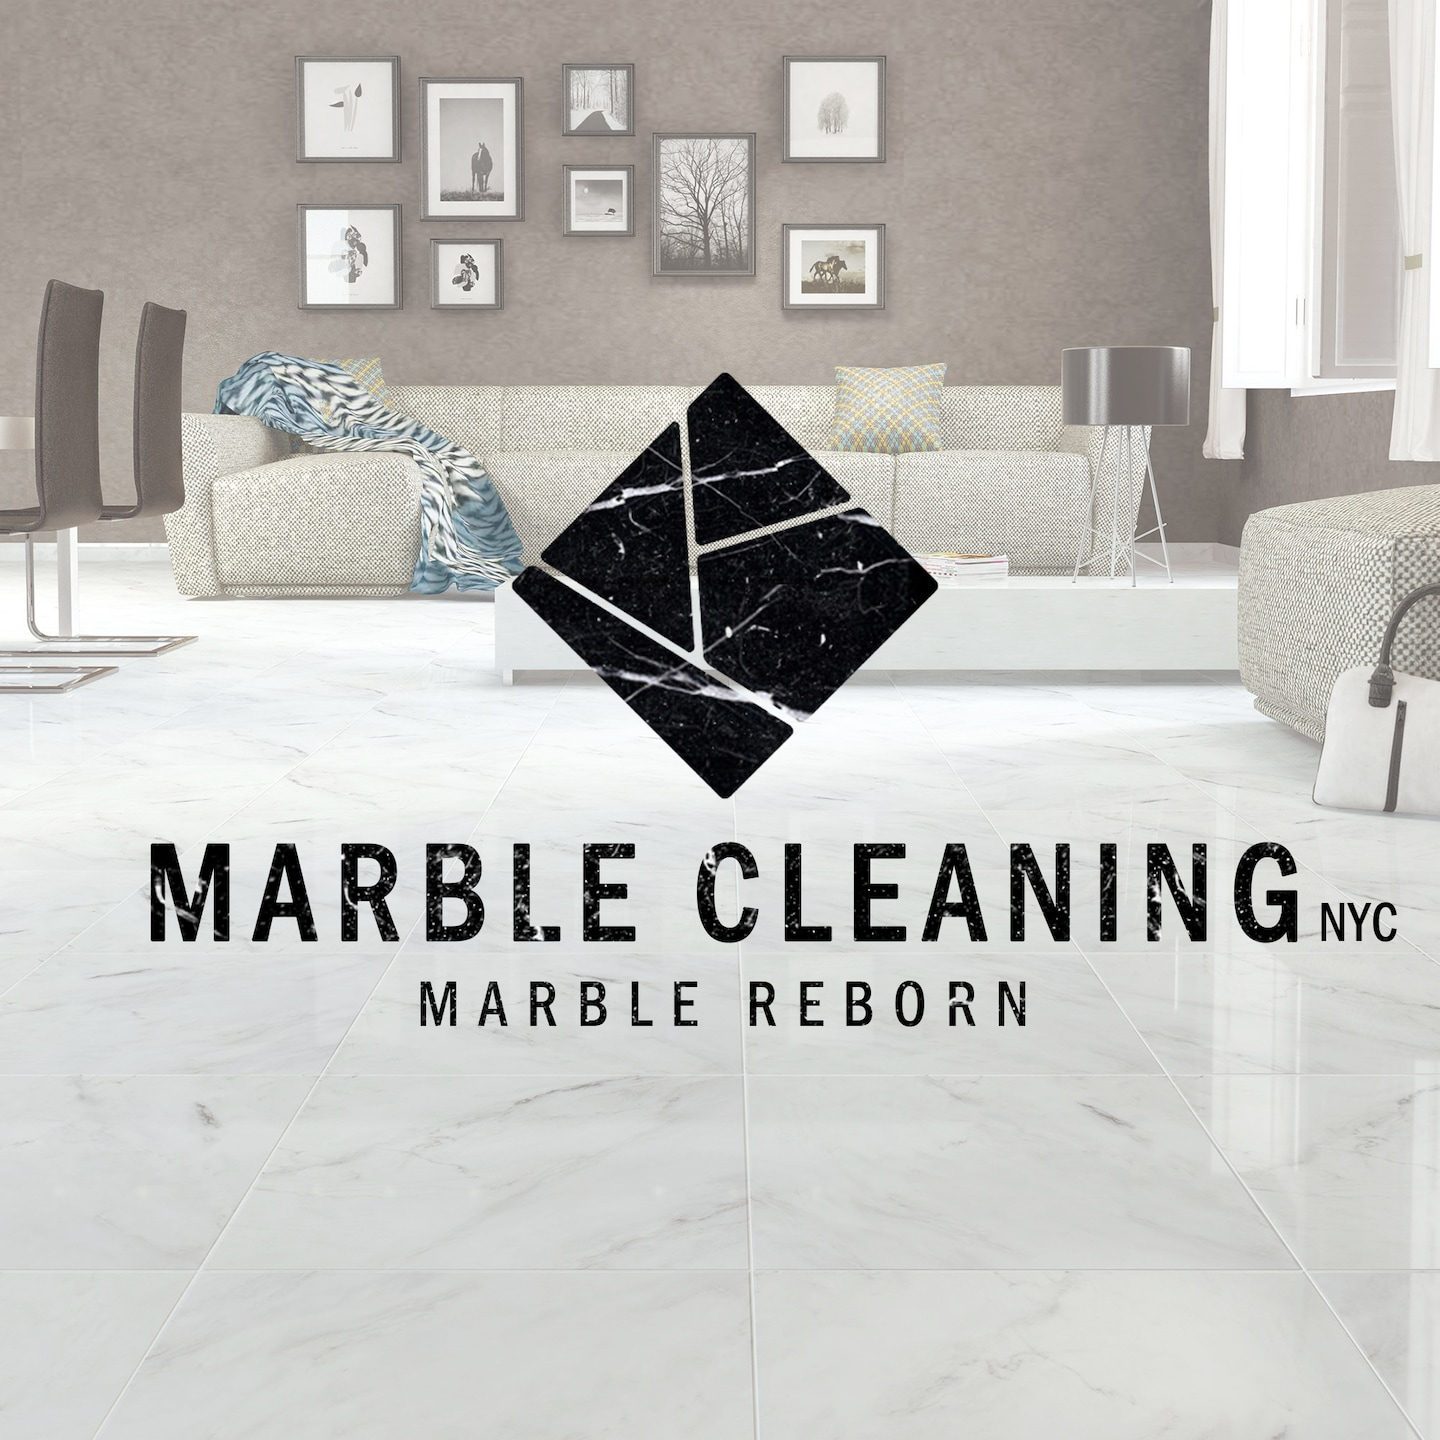 Marble Cleaning NYC